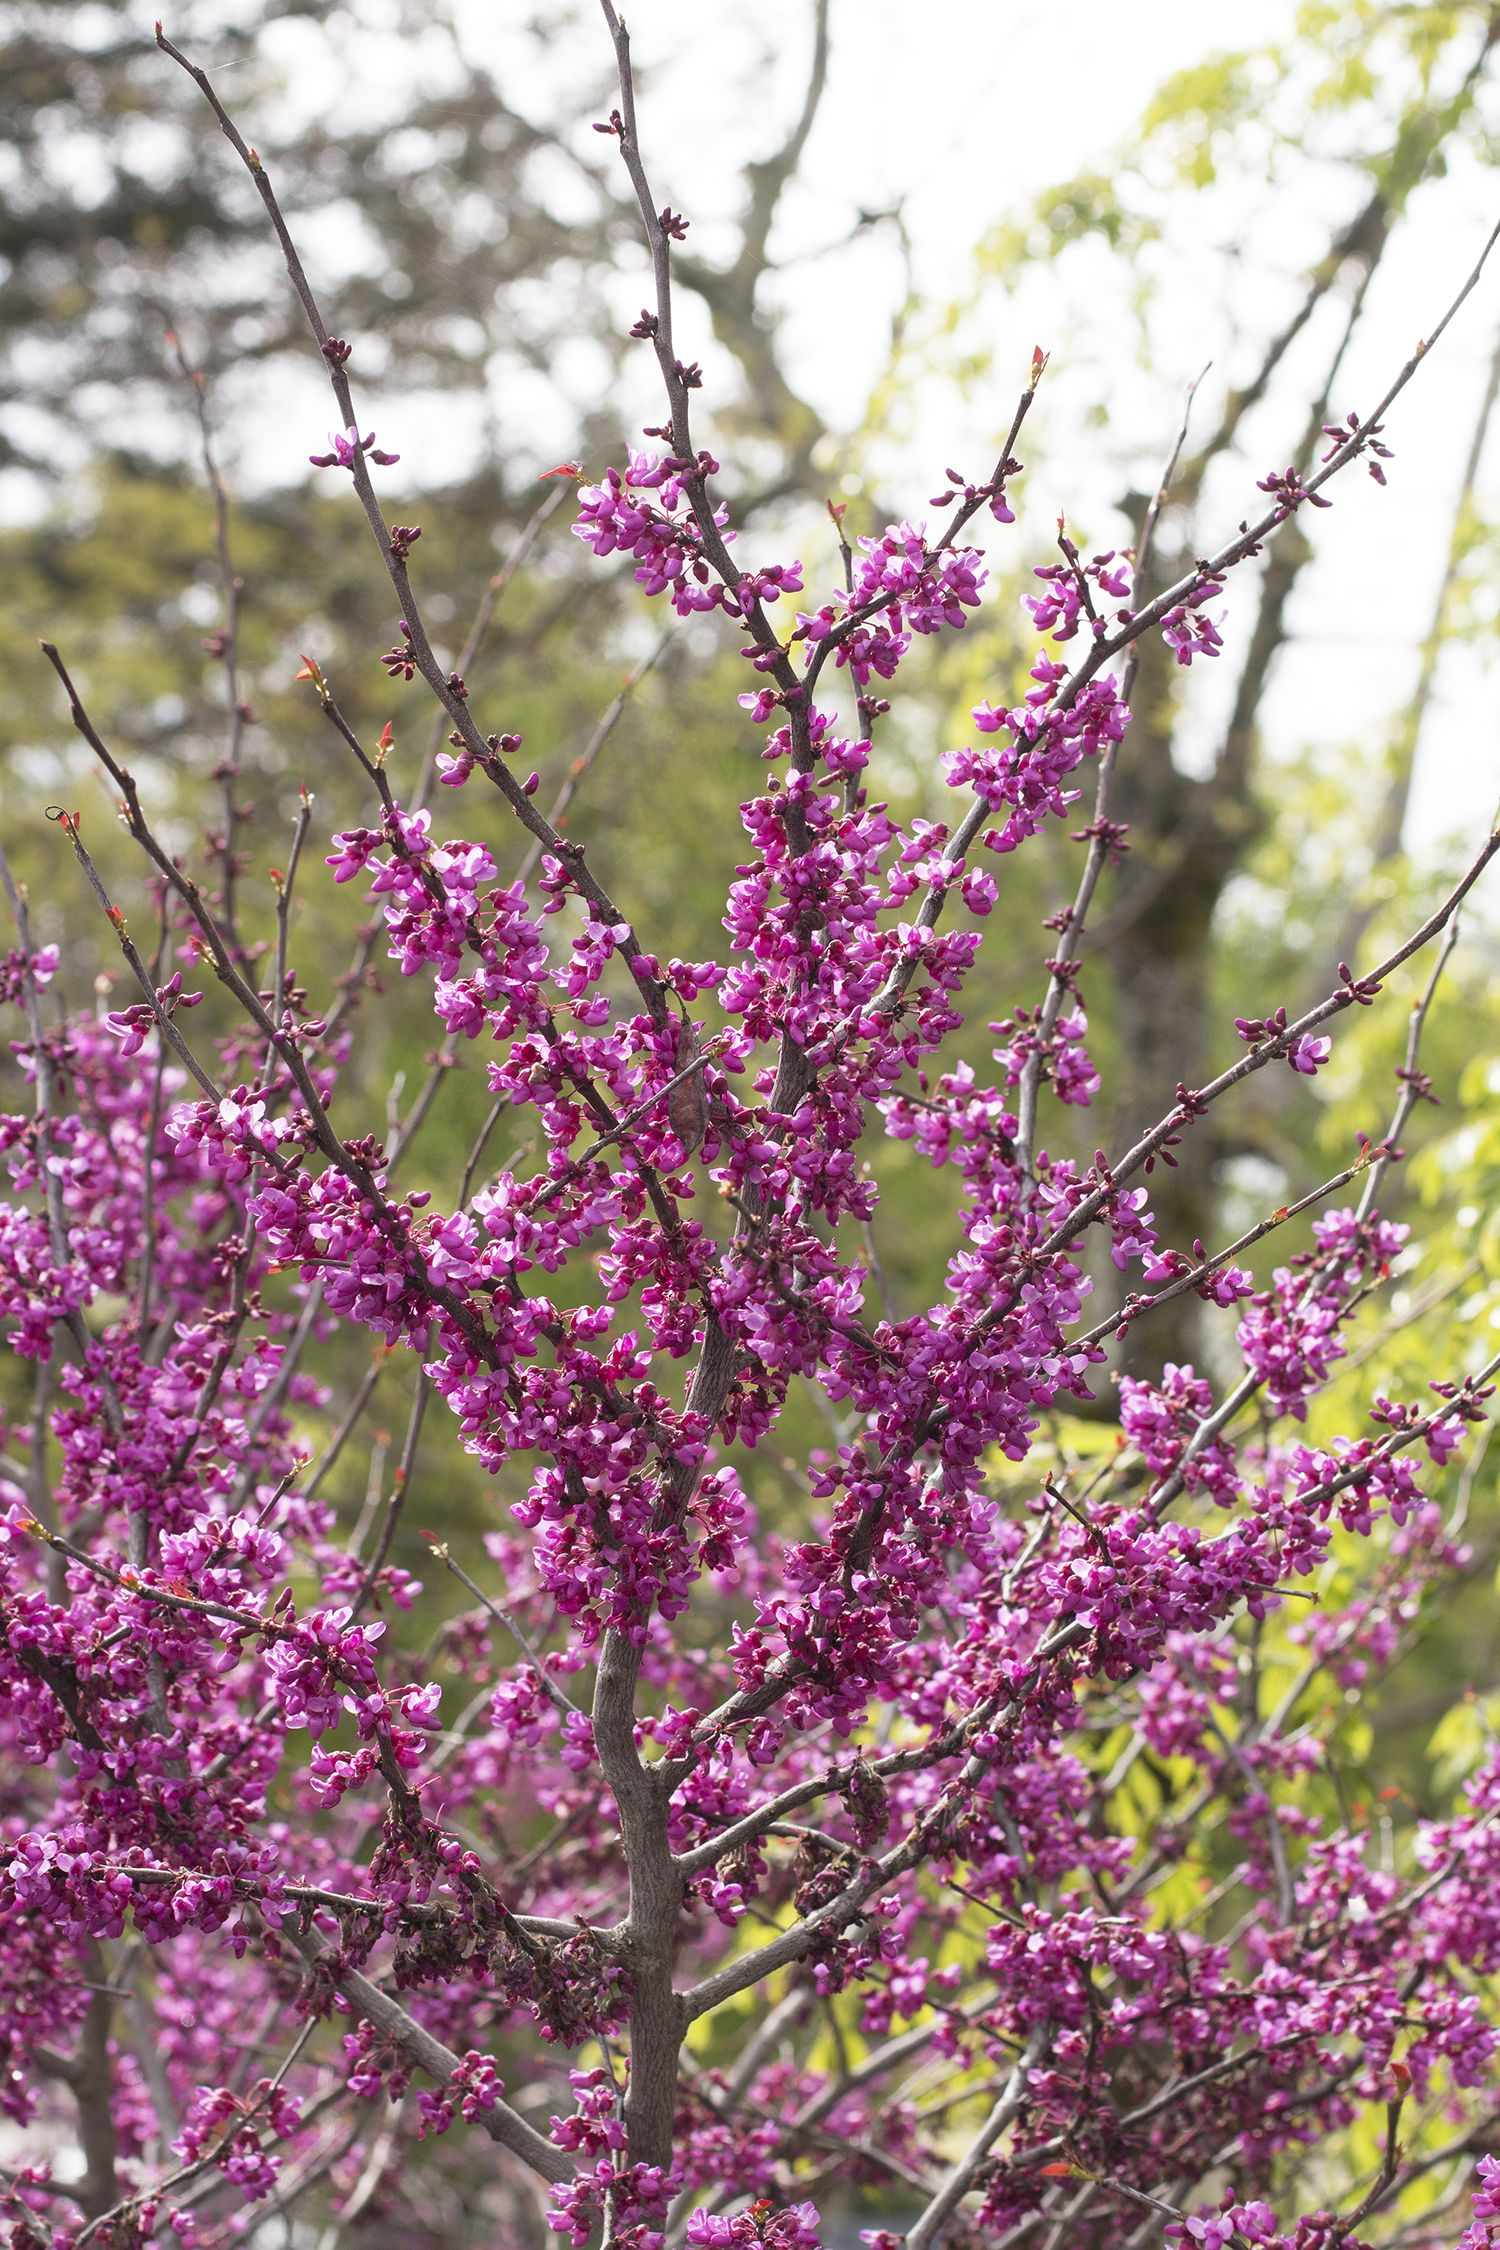 Forest Pansy Redbud Small Urban Garden Pansies Early Spring Flowers